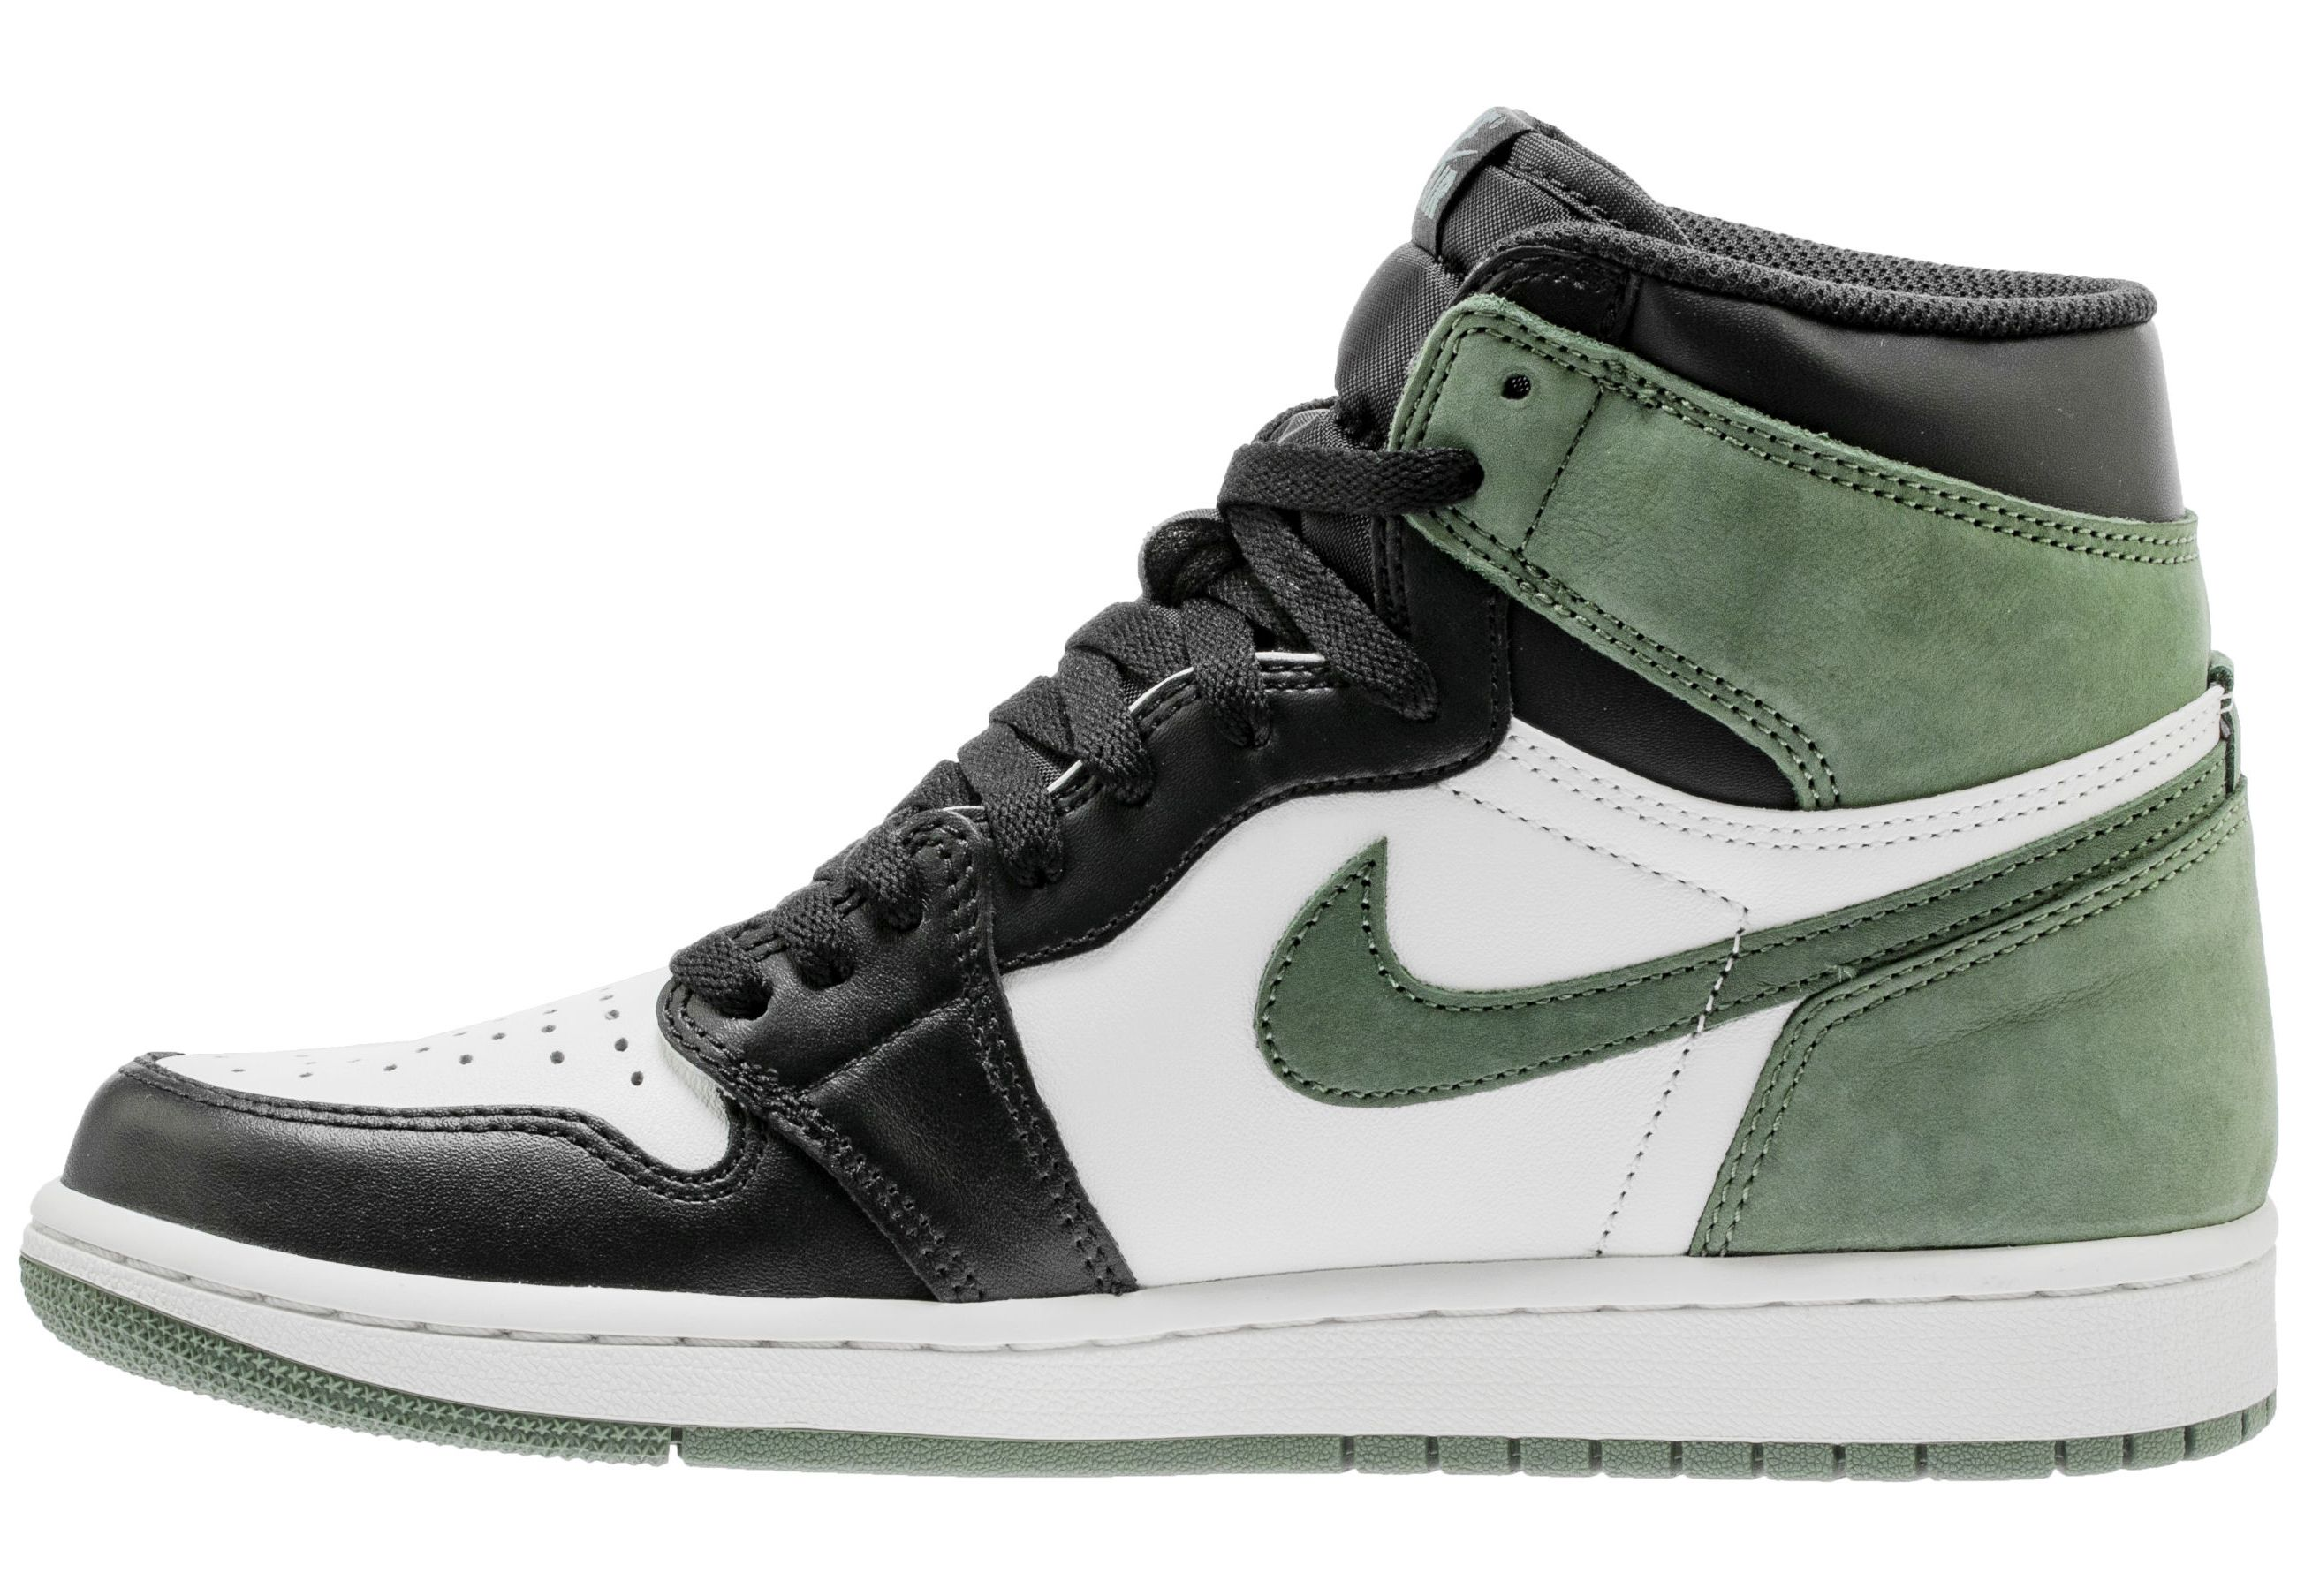 ff43a2d86f5 Air Jordan 1 Retro High OG Clay Green Releasing In May